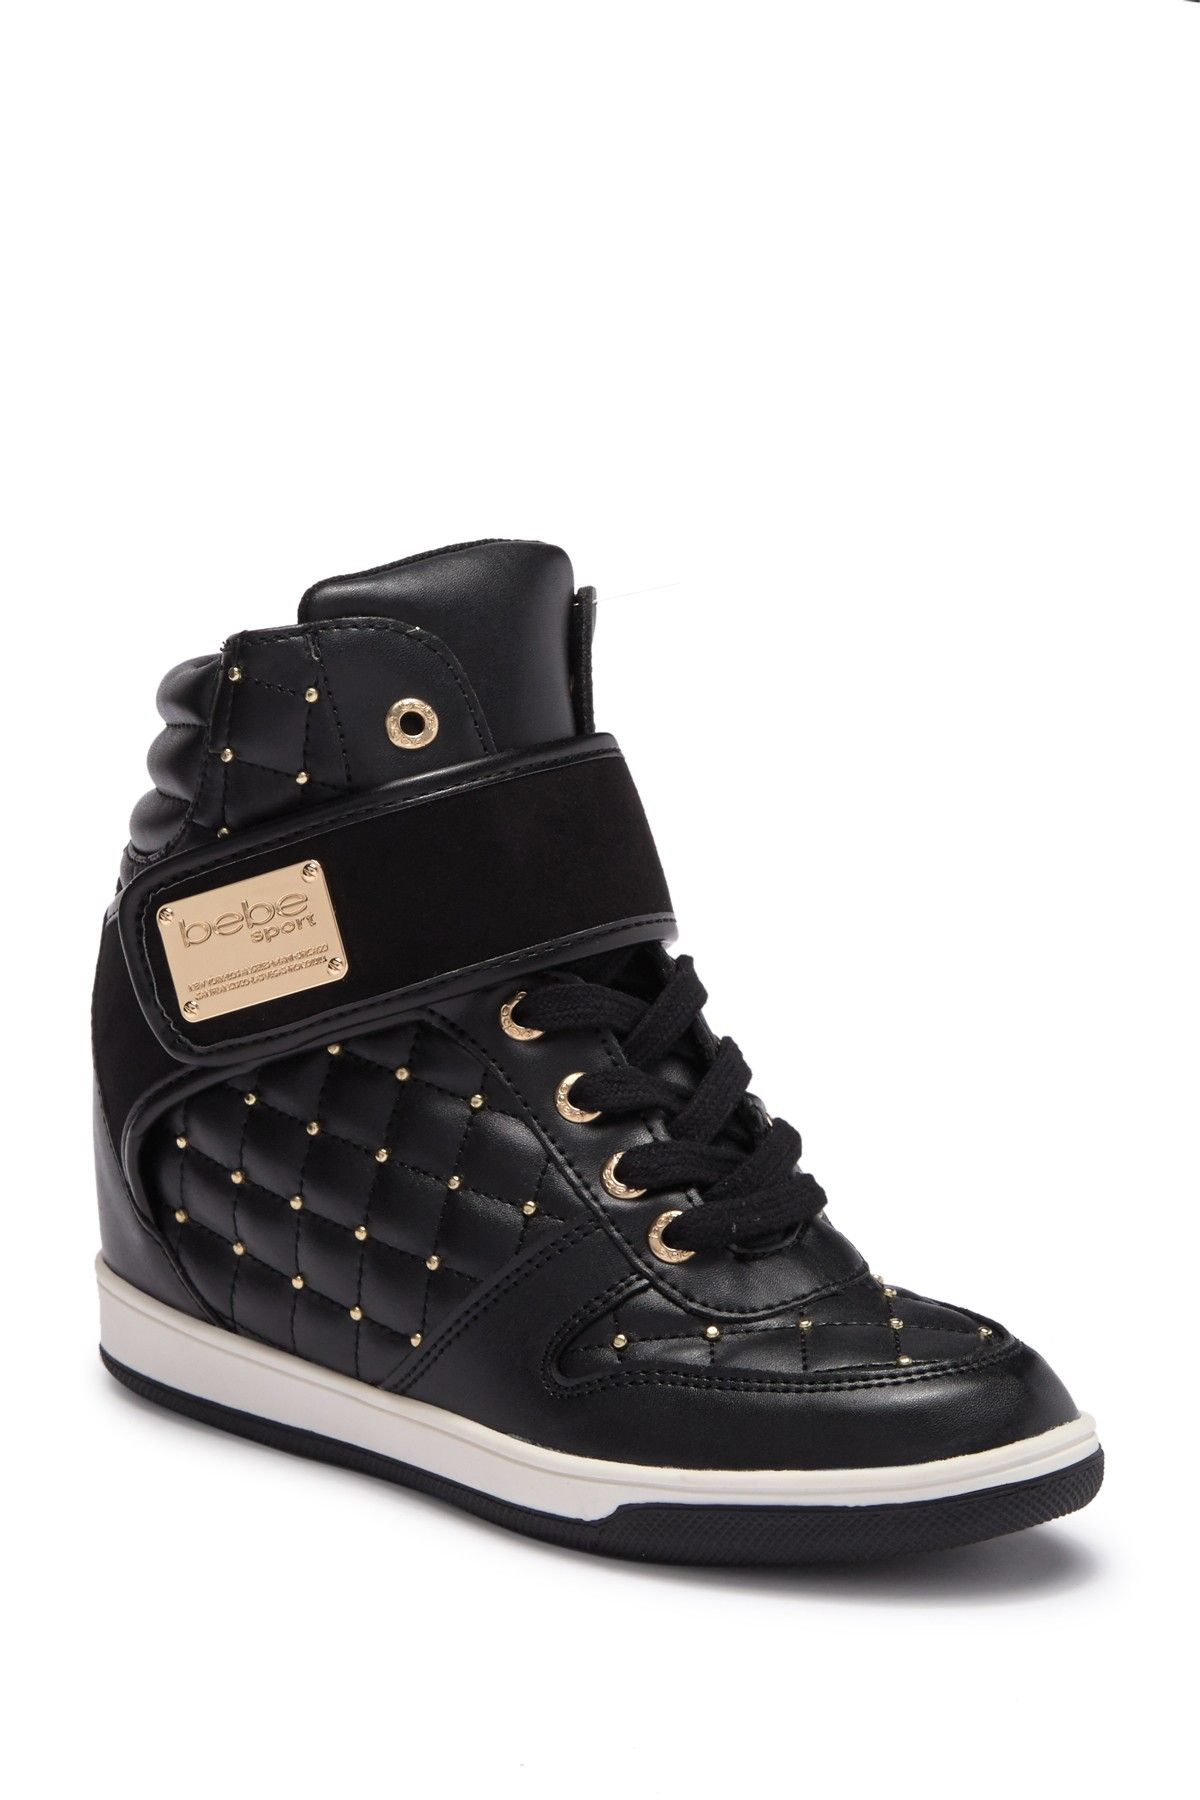 8a42203ffe2 Studded Hi-Top Wedge Sneaker by bebe on @nordstrom_rack, Size 6, 6.5, 7,  7.5. 8, 8.5 10 available only.